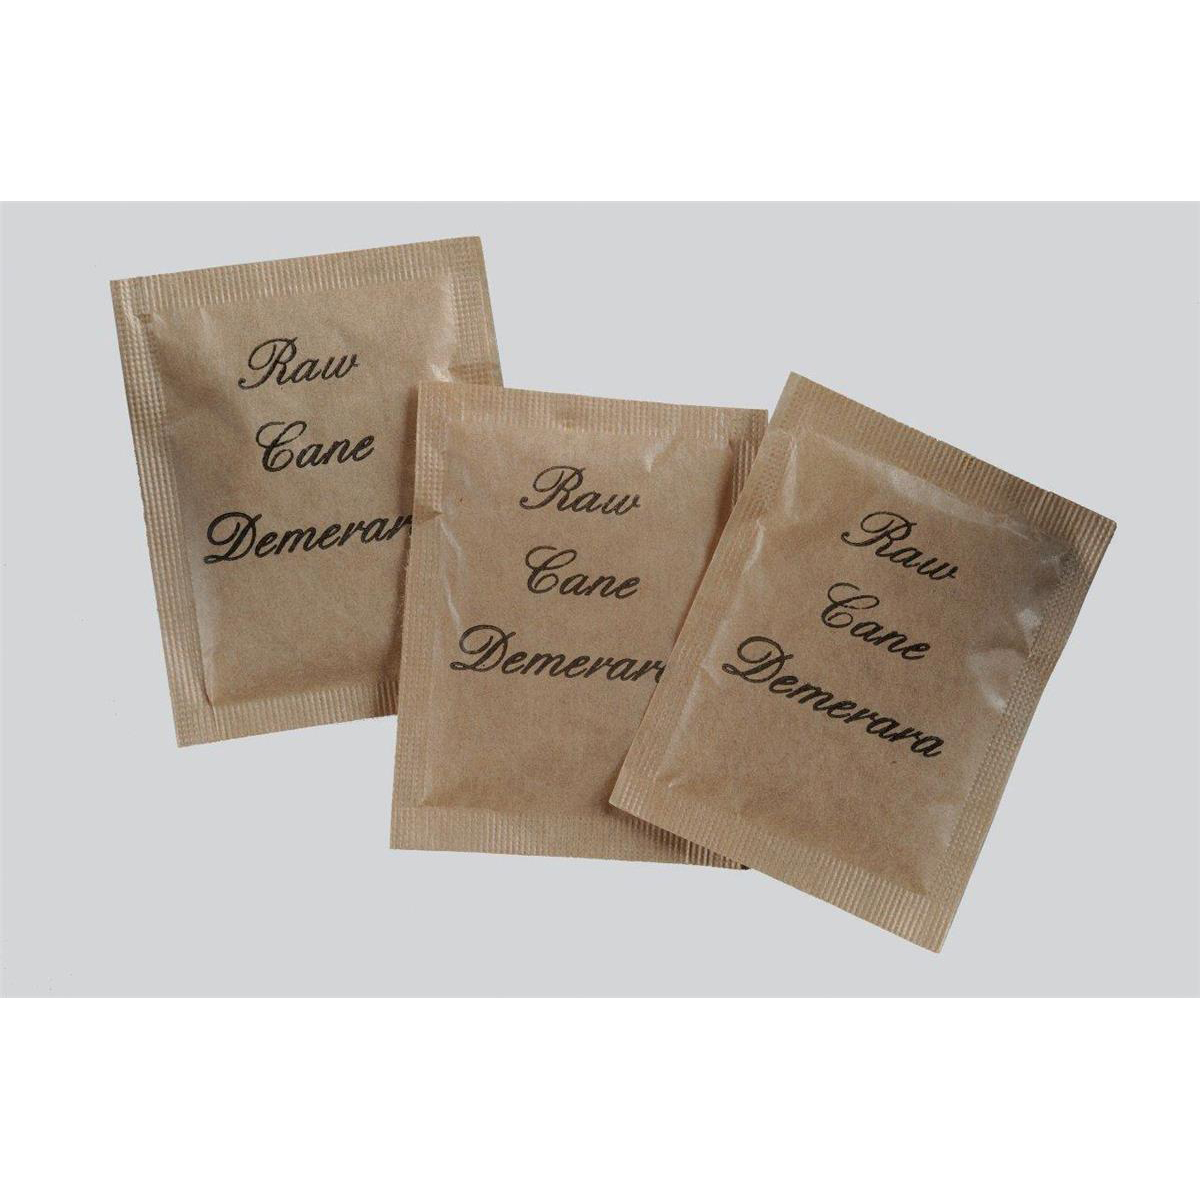 Demerara Brown Sugar Sachets Pack 600